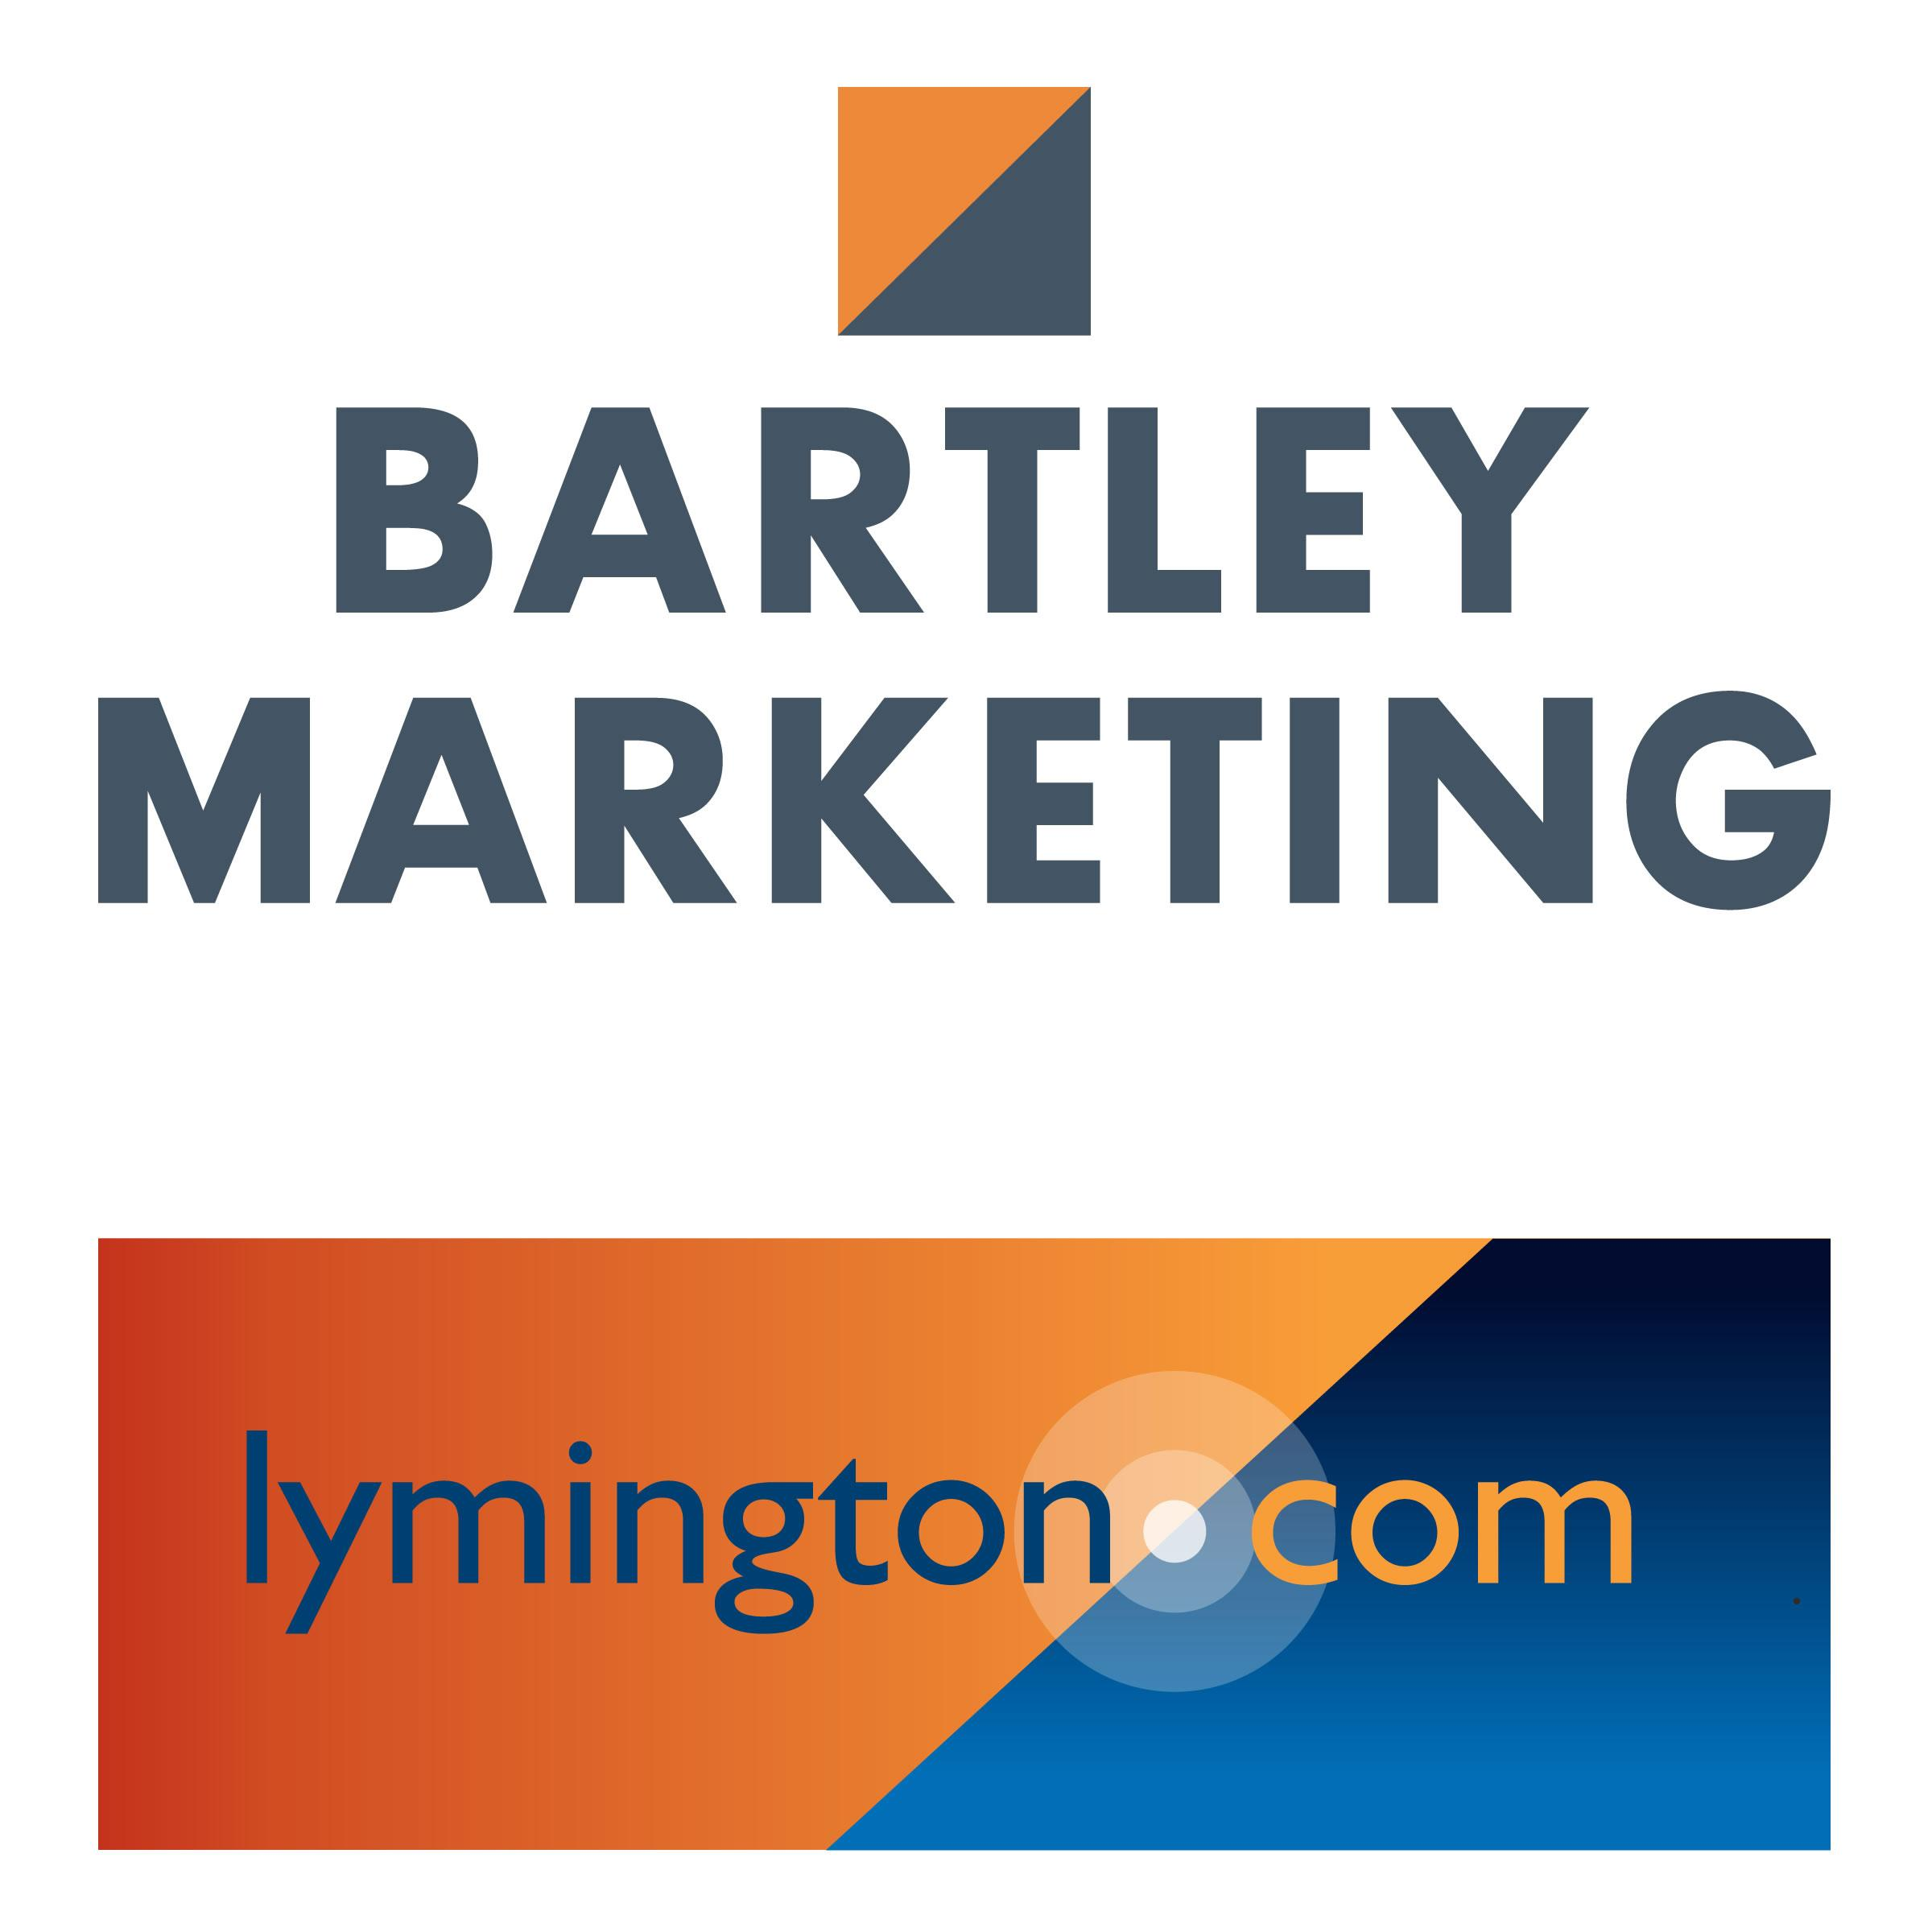 Bartley Marketing and Lymington dot com logos